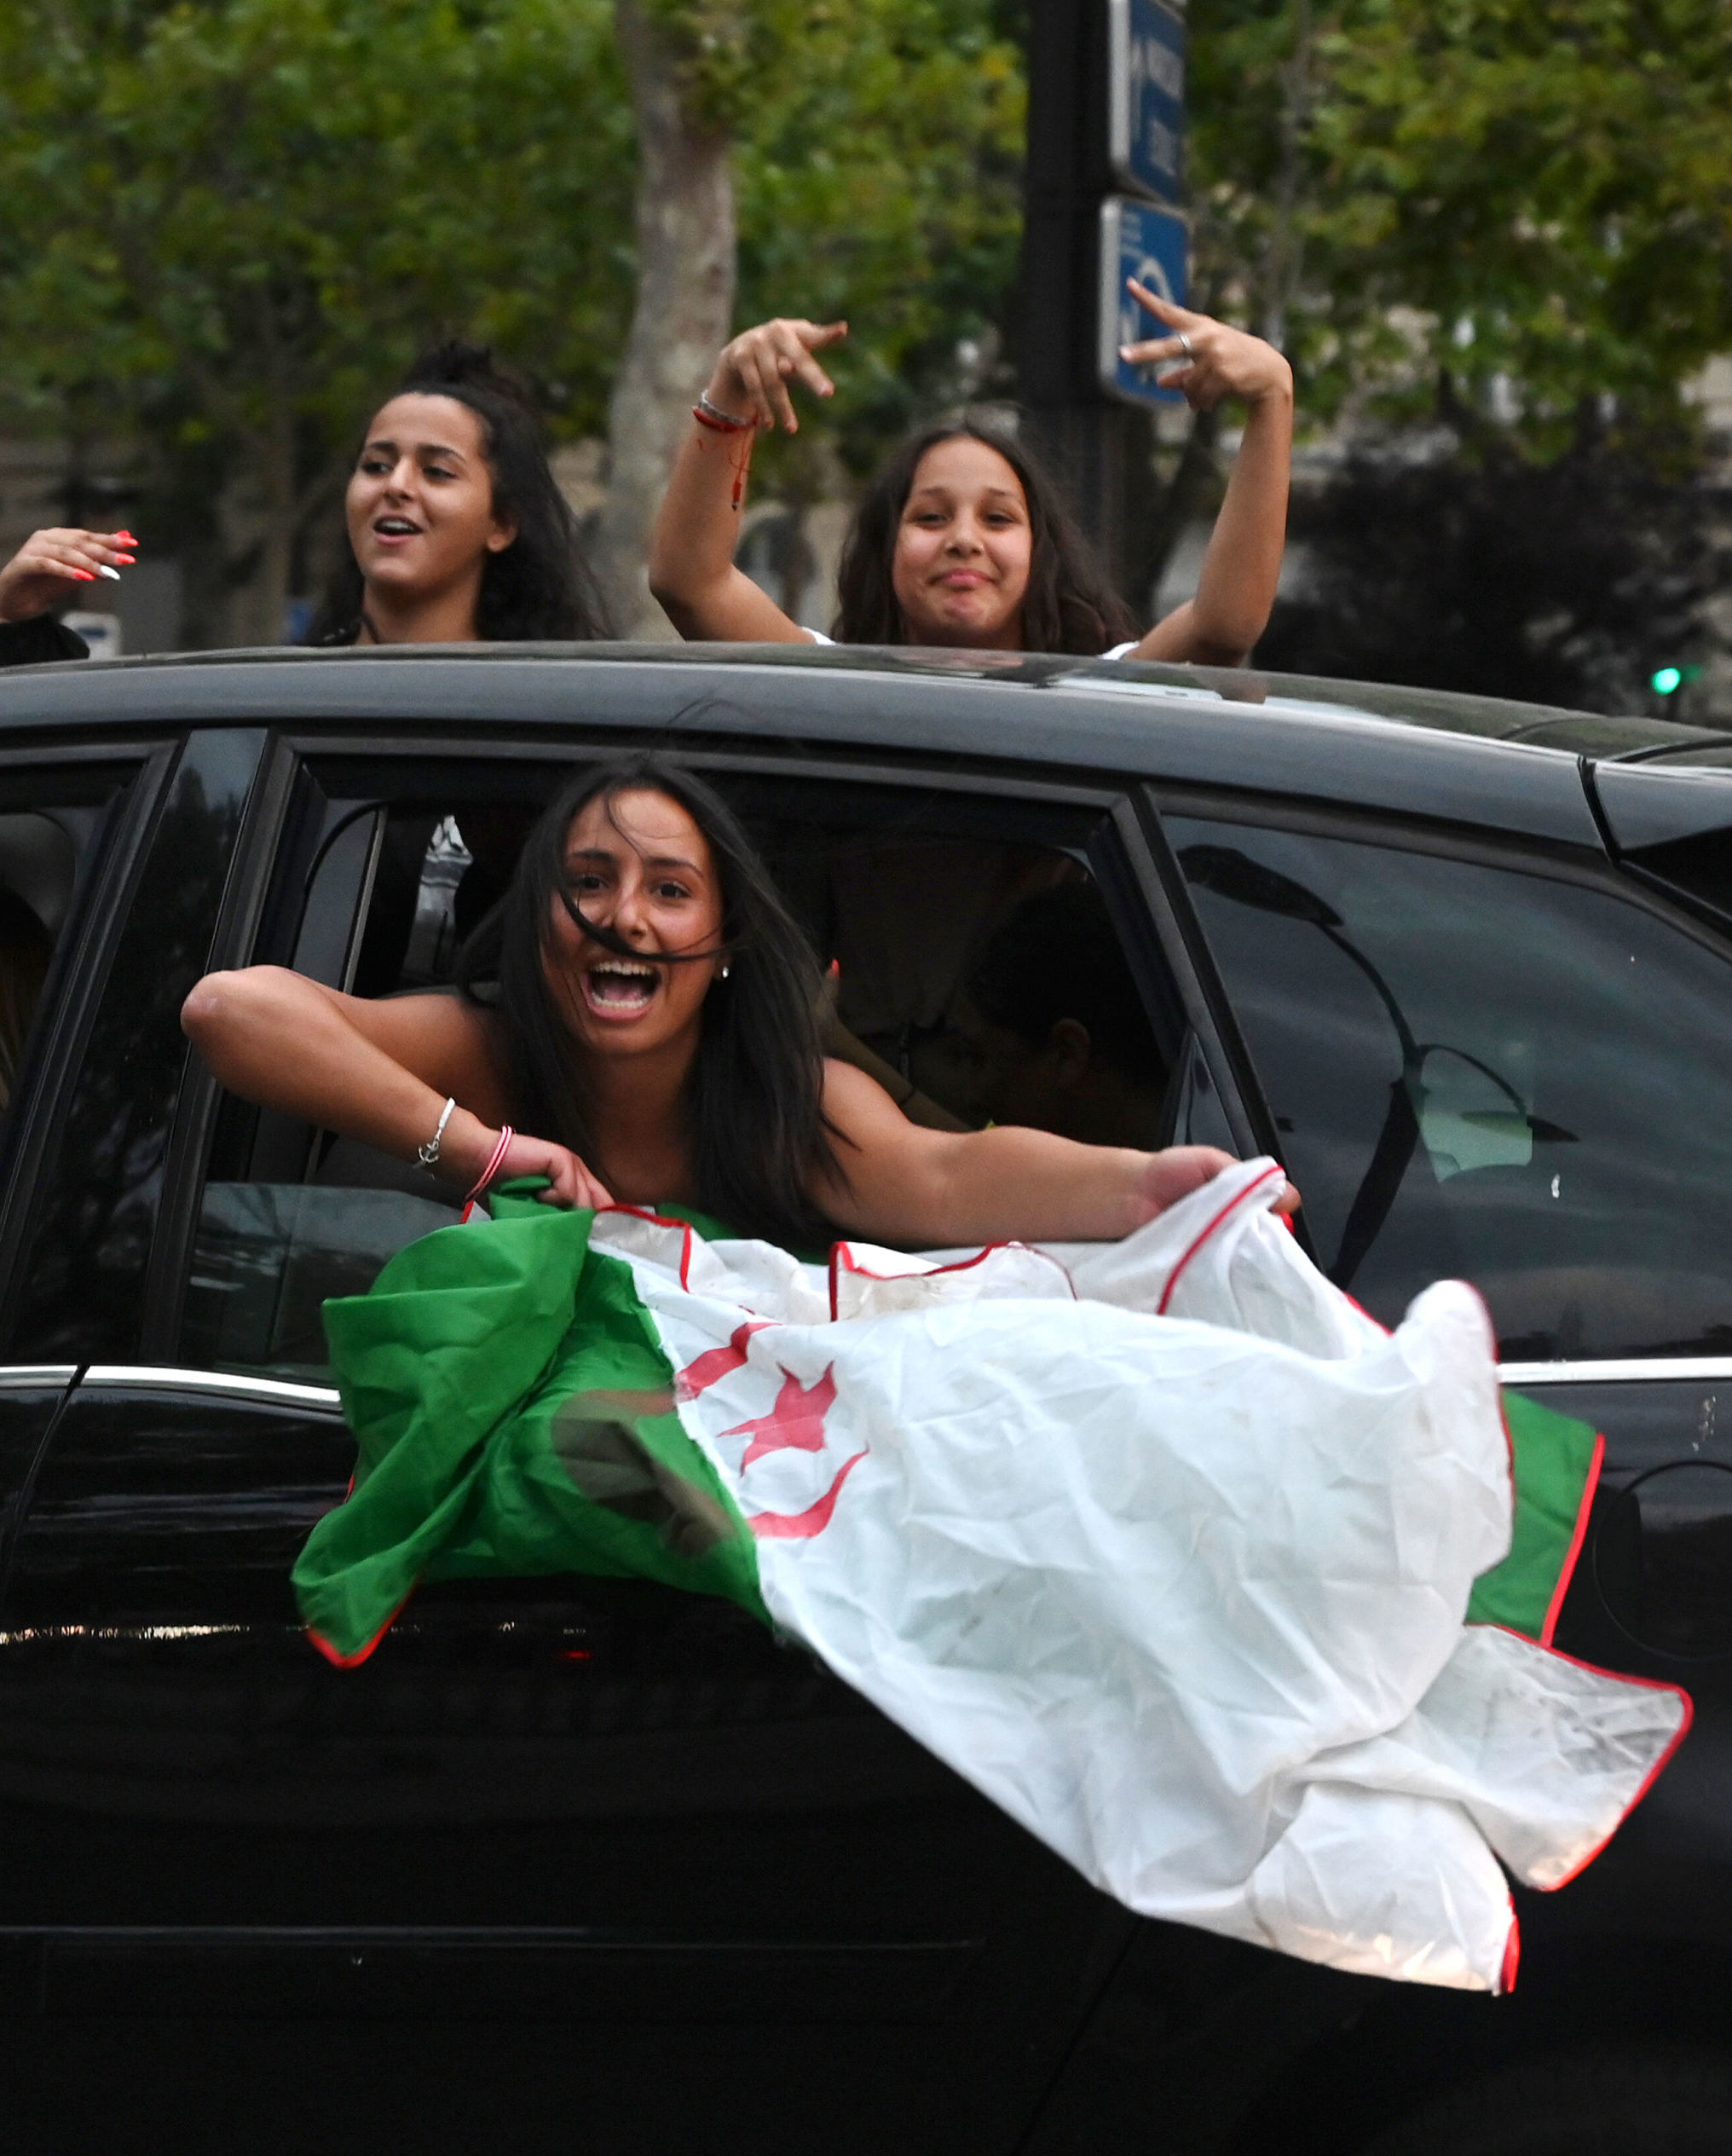 Algerian supporters celebrate in Paris after the victory of their team during the 2019 Africa Cup of Nations (CAN) quarter final football match between Ivory Coast and Algeria, on July 11, 2019